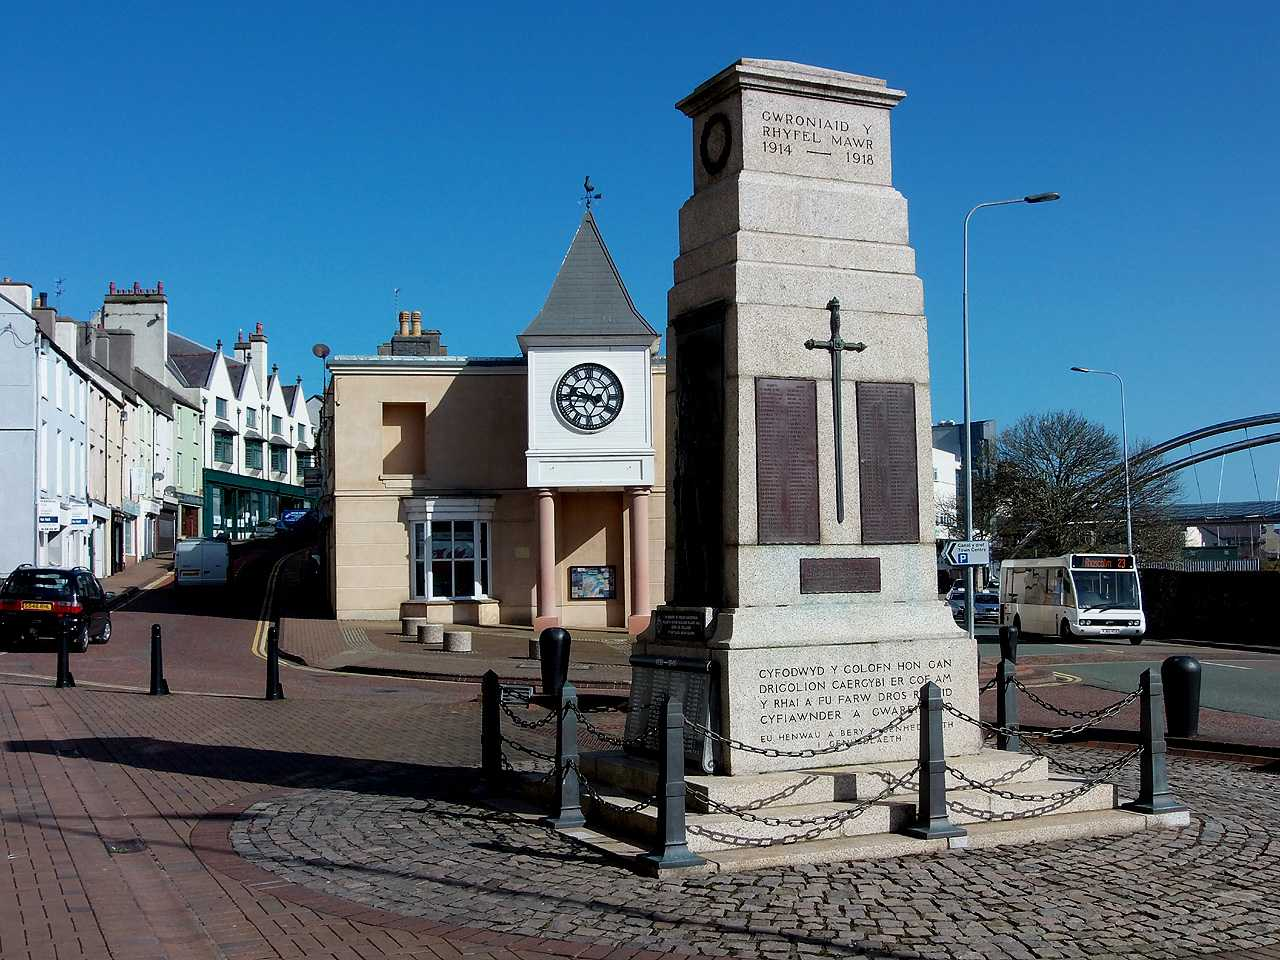 Holyhead War Memorial and Town Clock